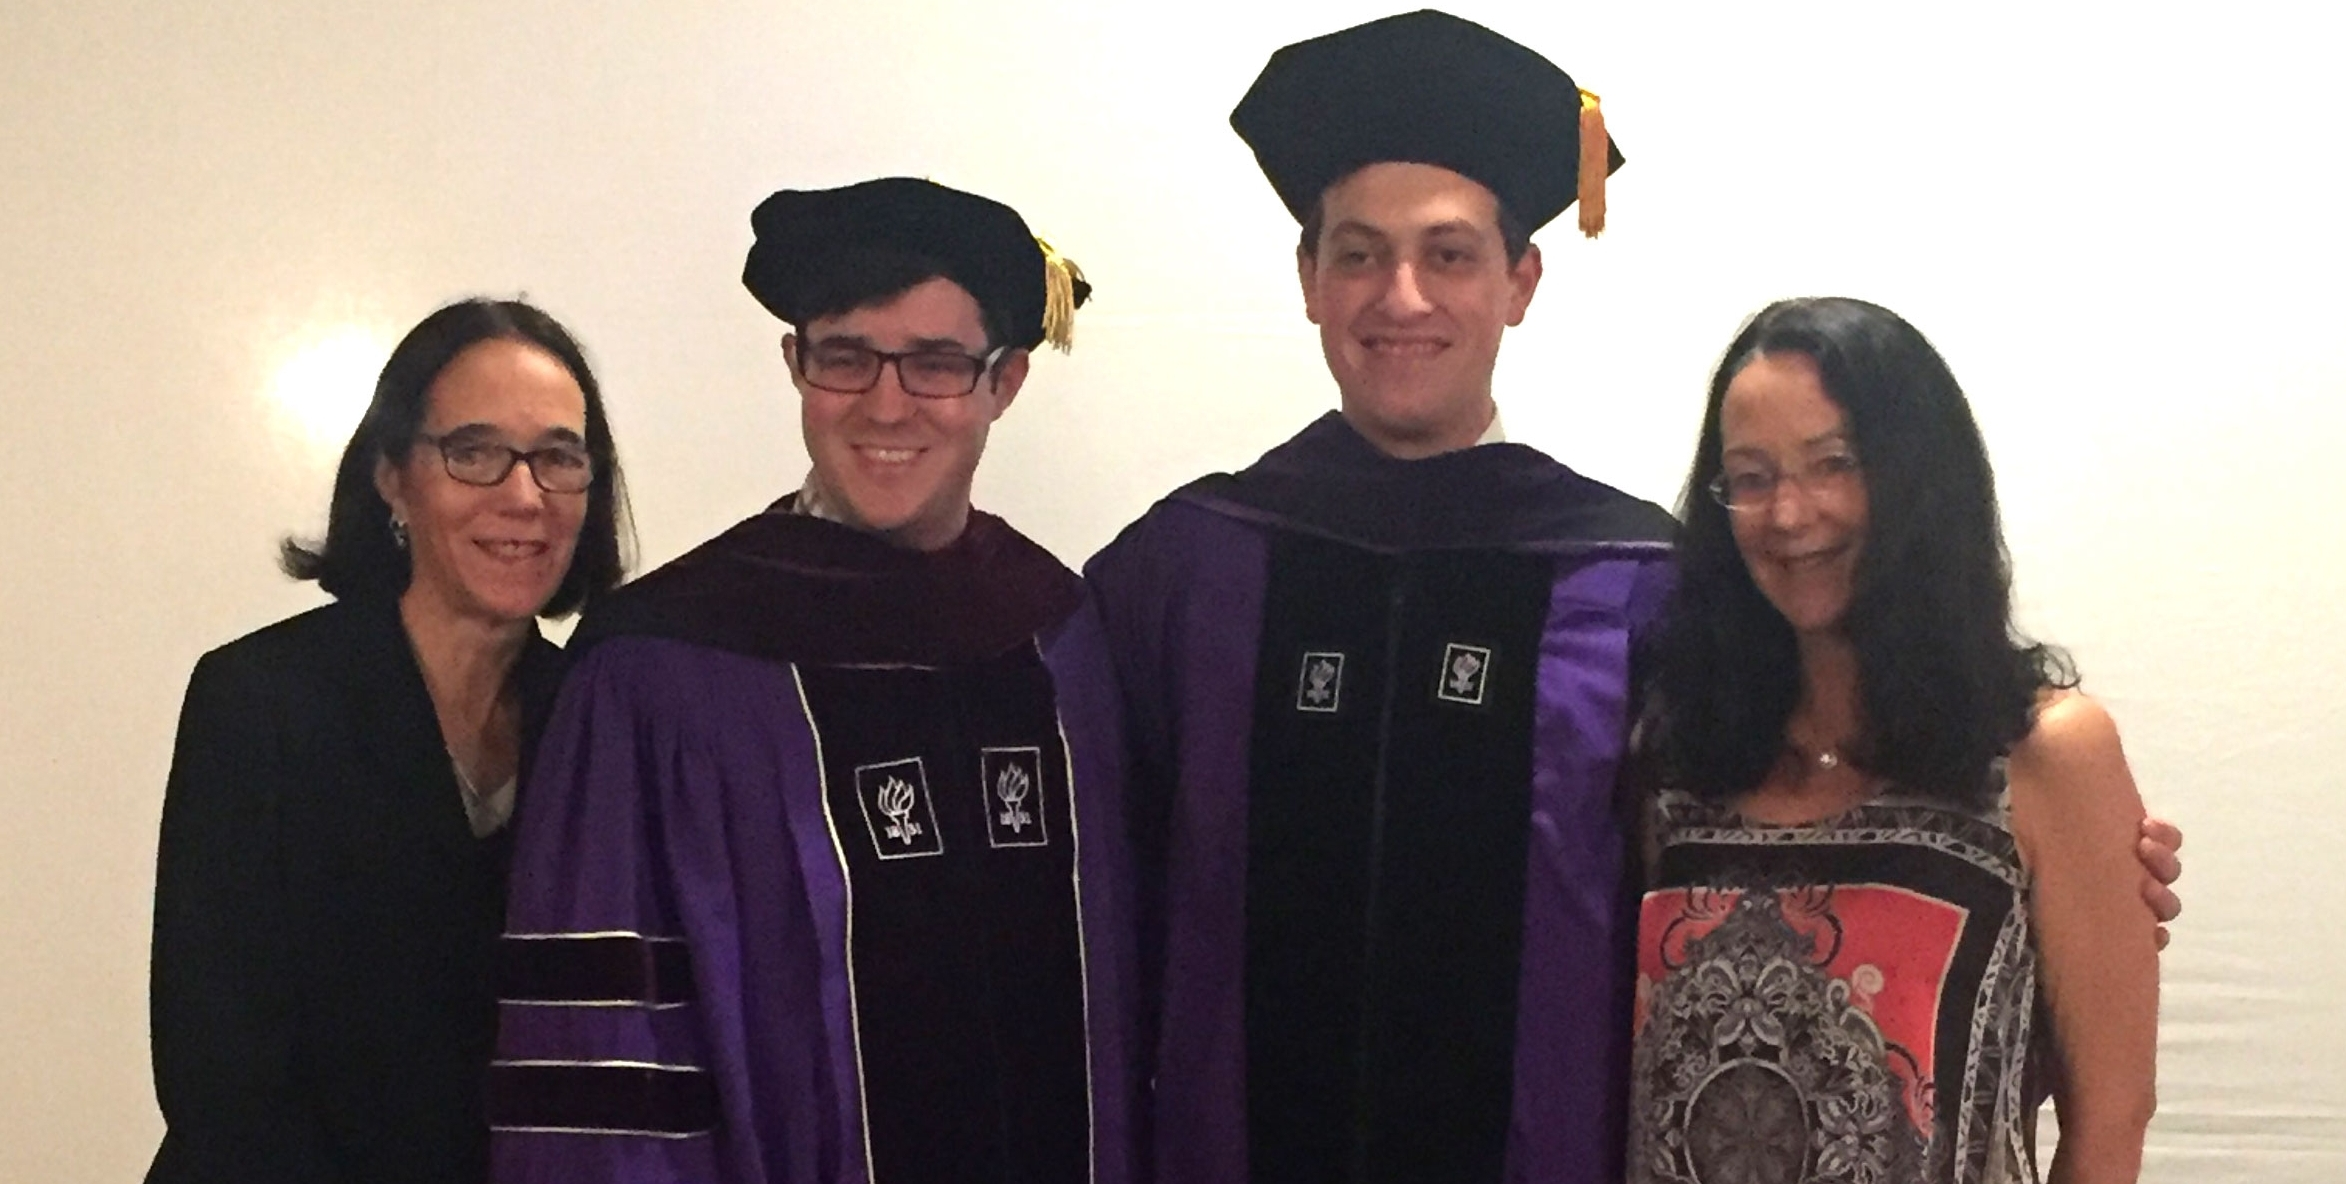 Traci Viklund, CJ Quackenbush, NYU Law Scholar Getzel Berger,    Gail Quackenbush at NYU Law Convocation